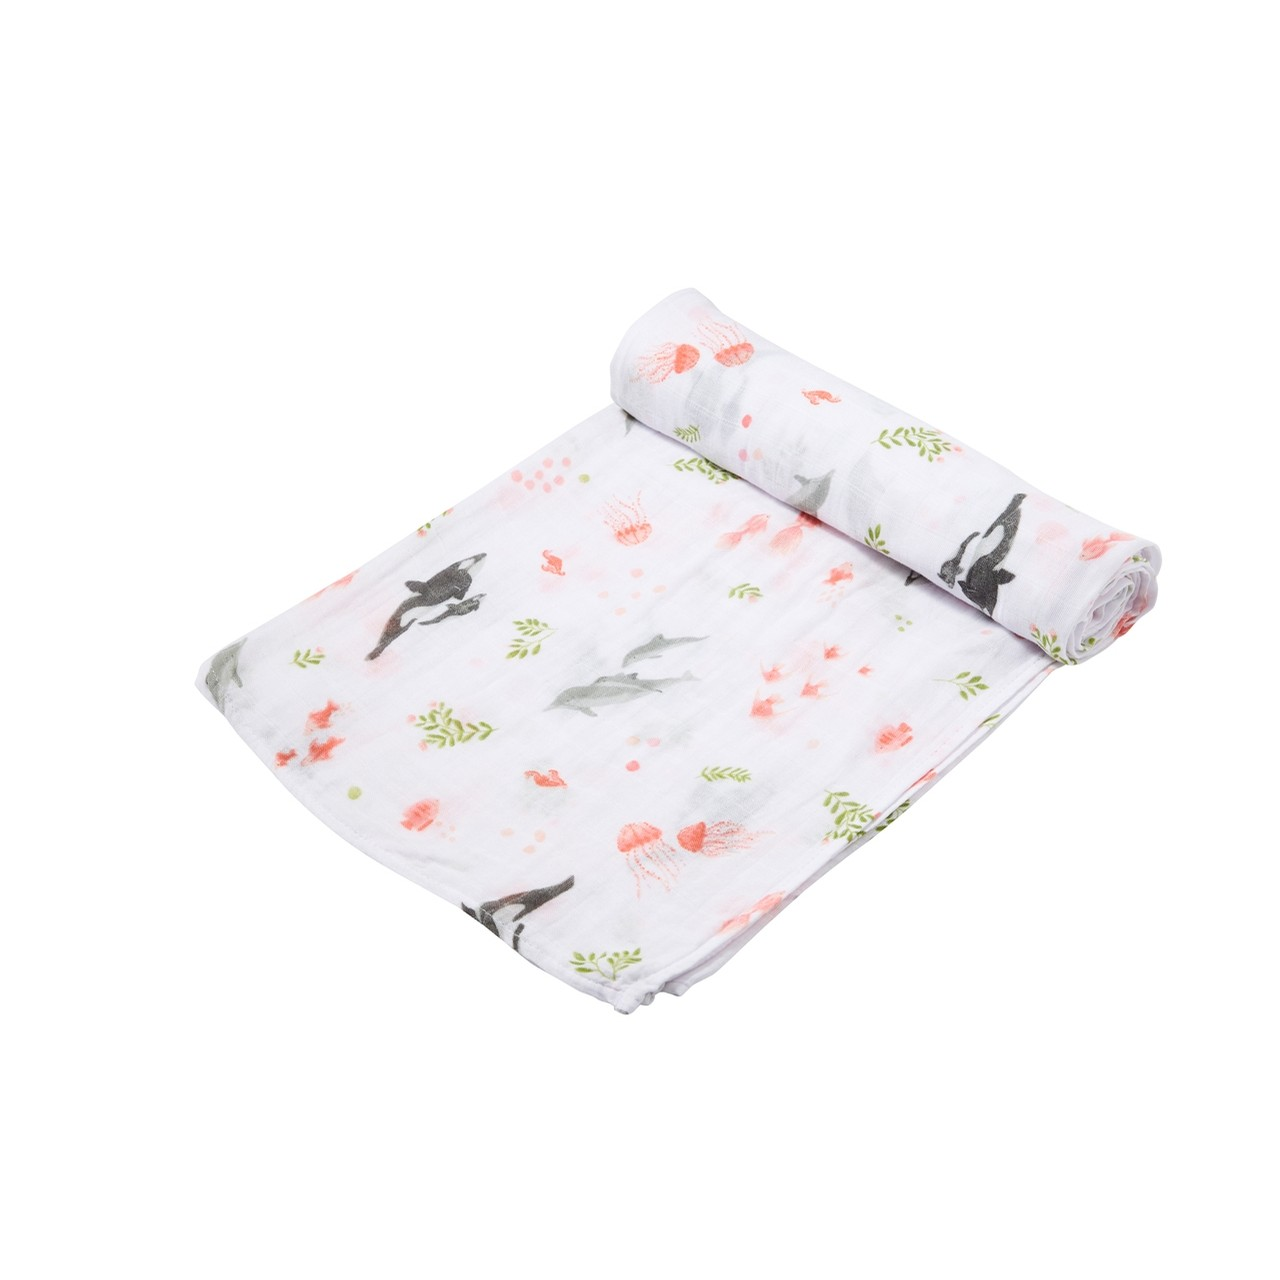 Swaddle Blanket - Dolphin